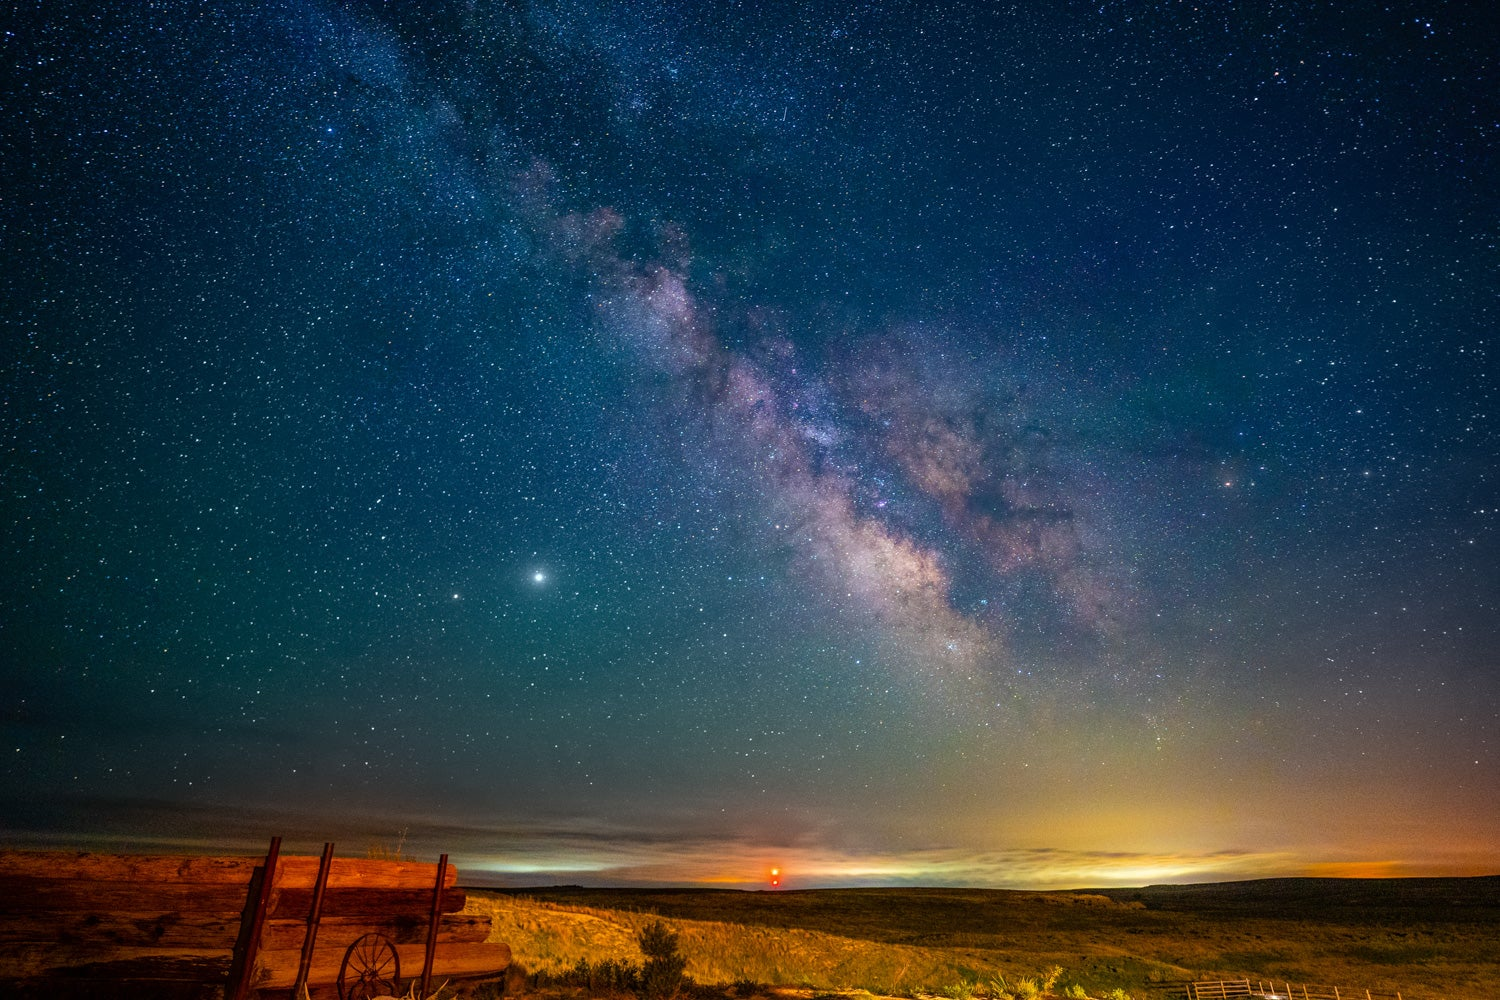 Milky Way with Wagon Wheel